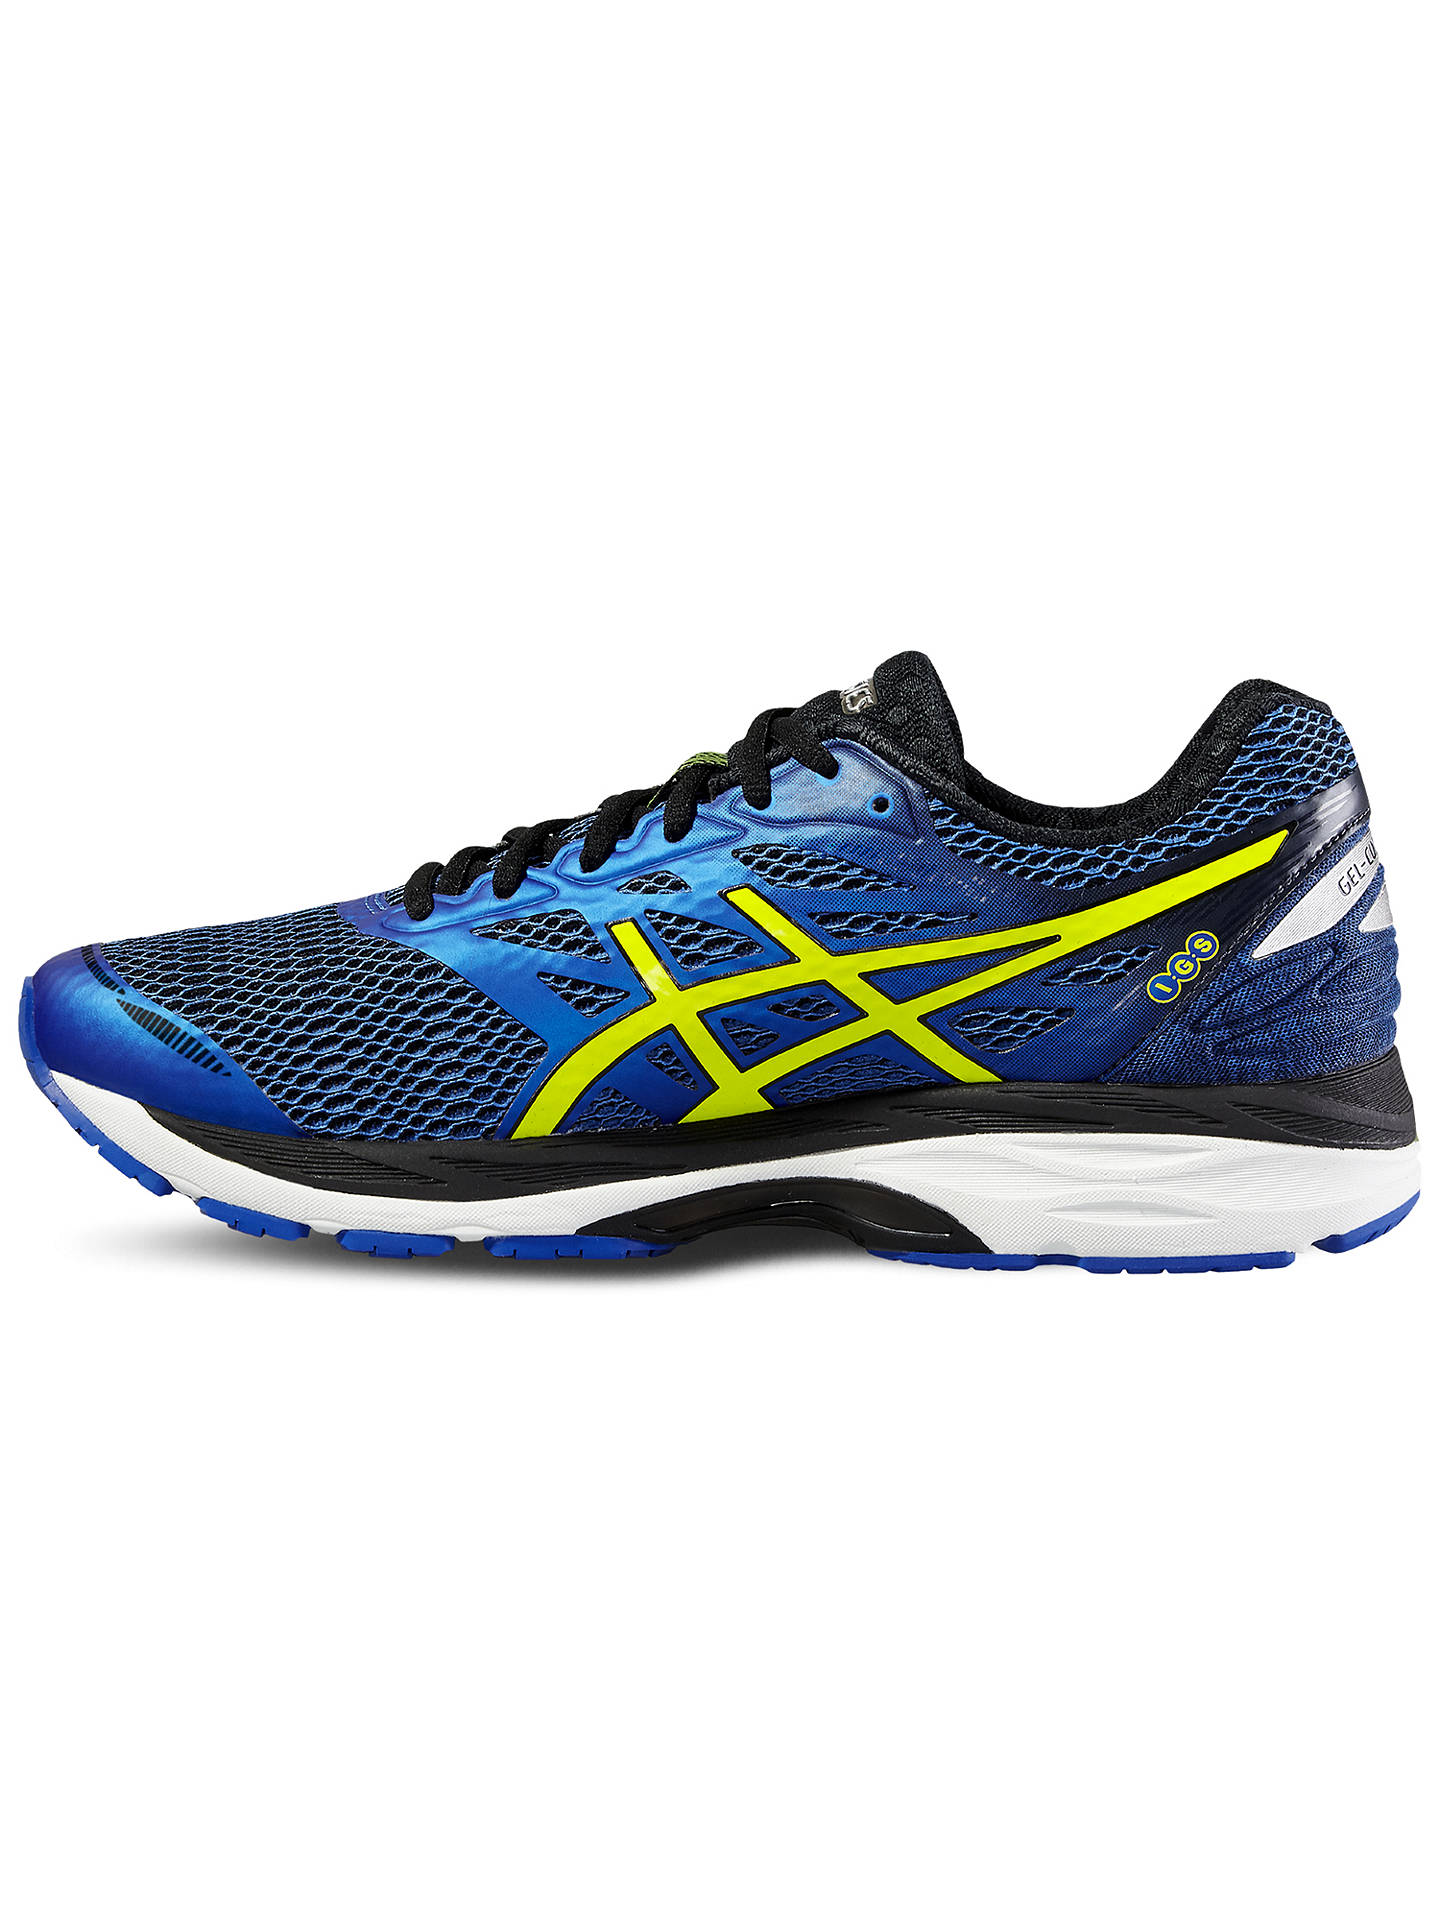 525a8a109 Buy Asics Gel-Cumulus 18 Men's Running Shoes, Blue/Yellow, 10 Online ...